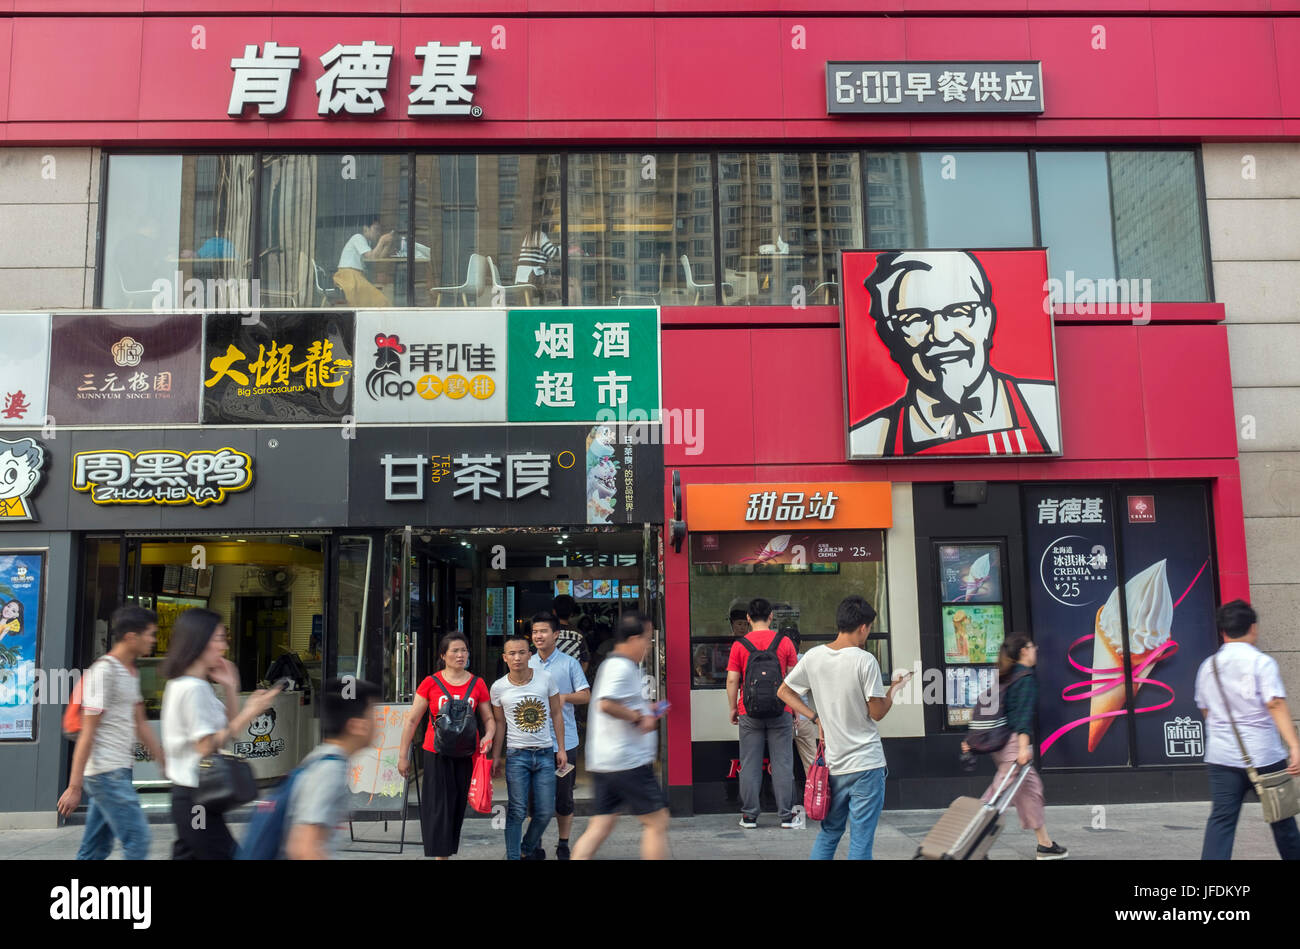 A KFC in Beijing, China. - Stock Image